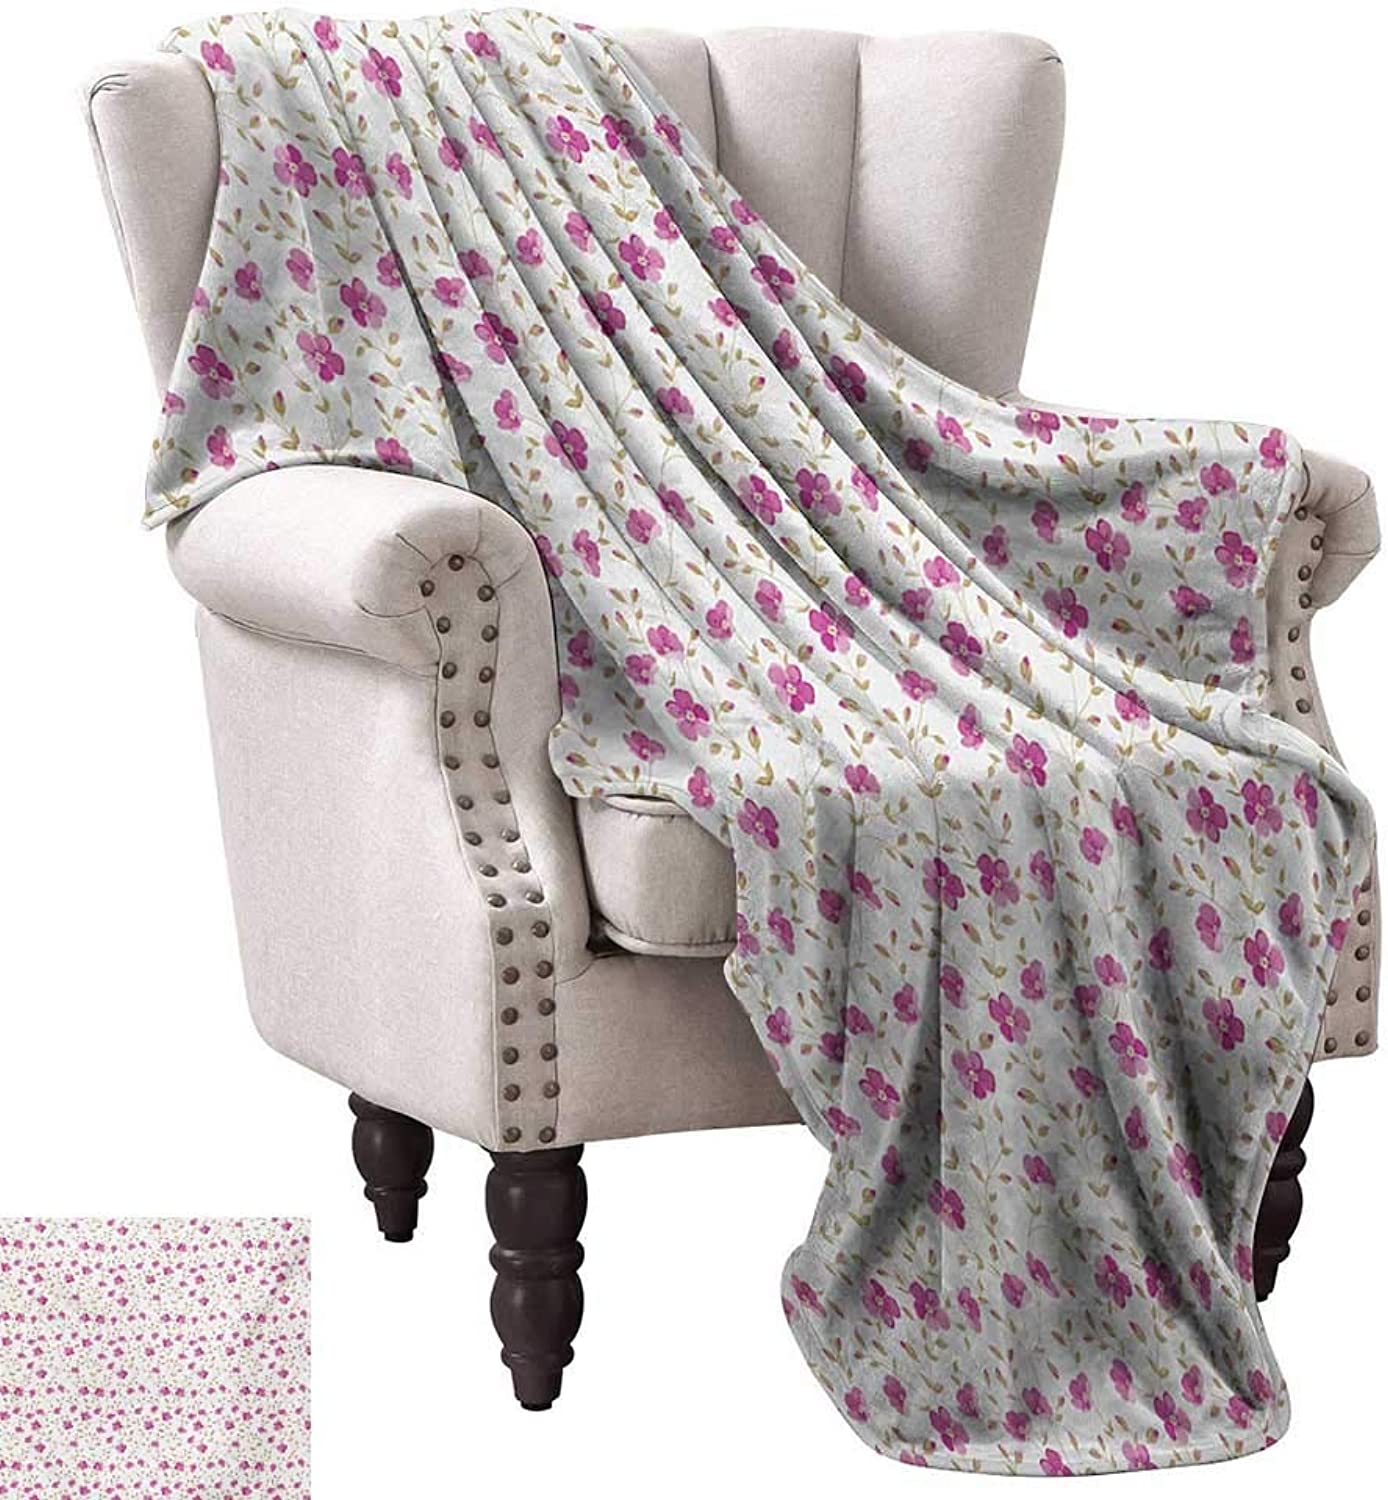 Anyangeight Digital Printing Blanket,Peony in Vintage Style Girly Sweet Curly Stems Happy Times Engagement Theme 60 x50 ,Super Soft and Comfortable,Suitable for Sofas,Chairs,beds